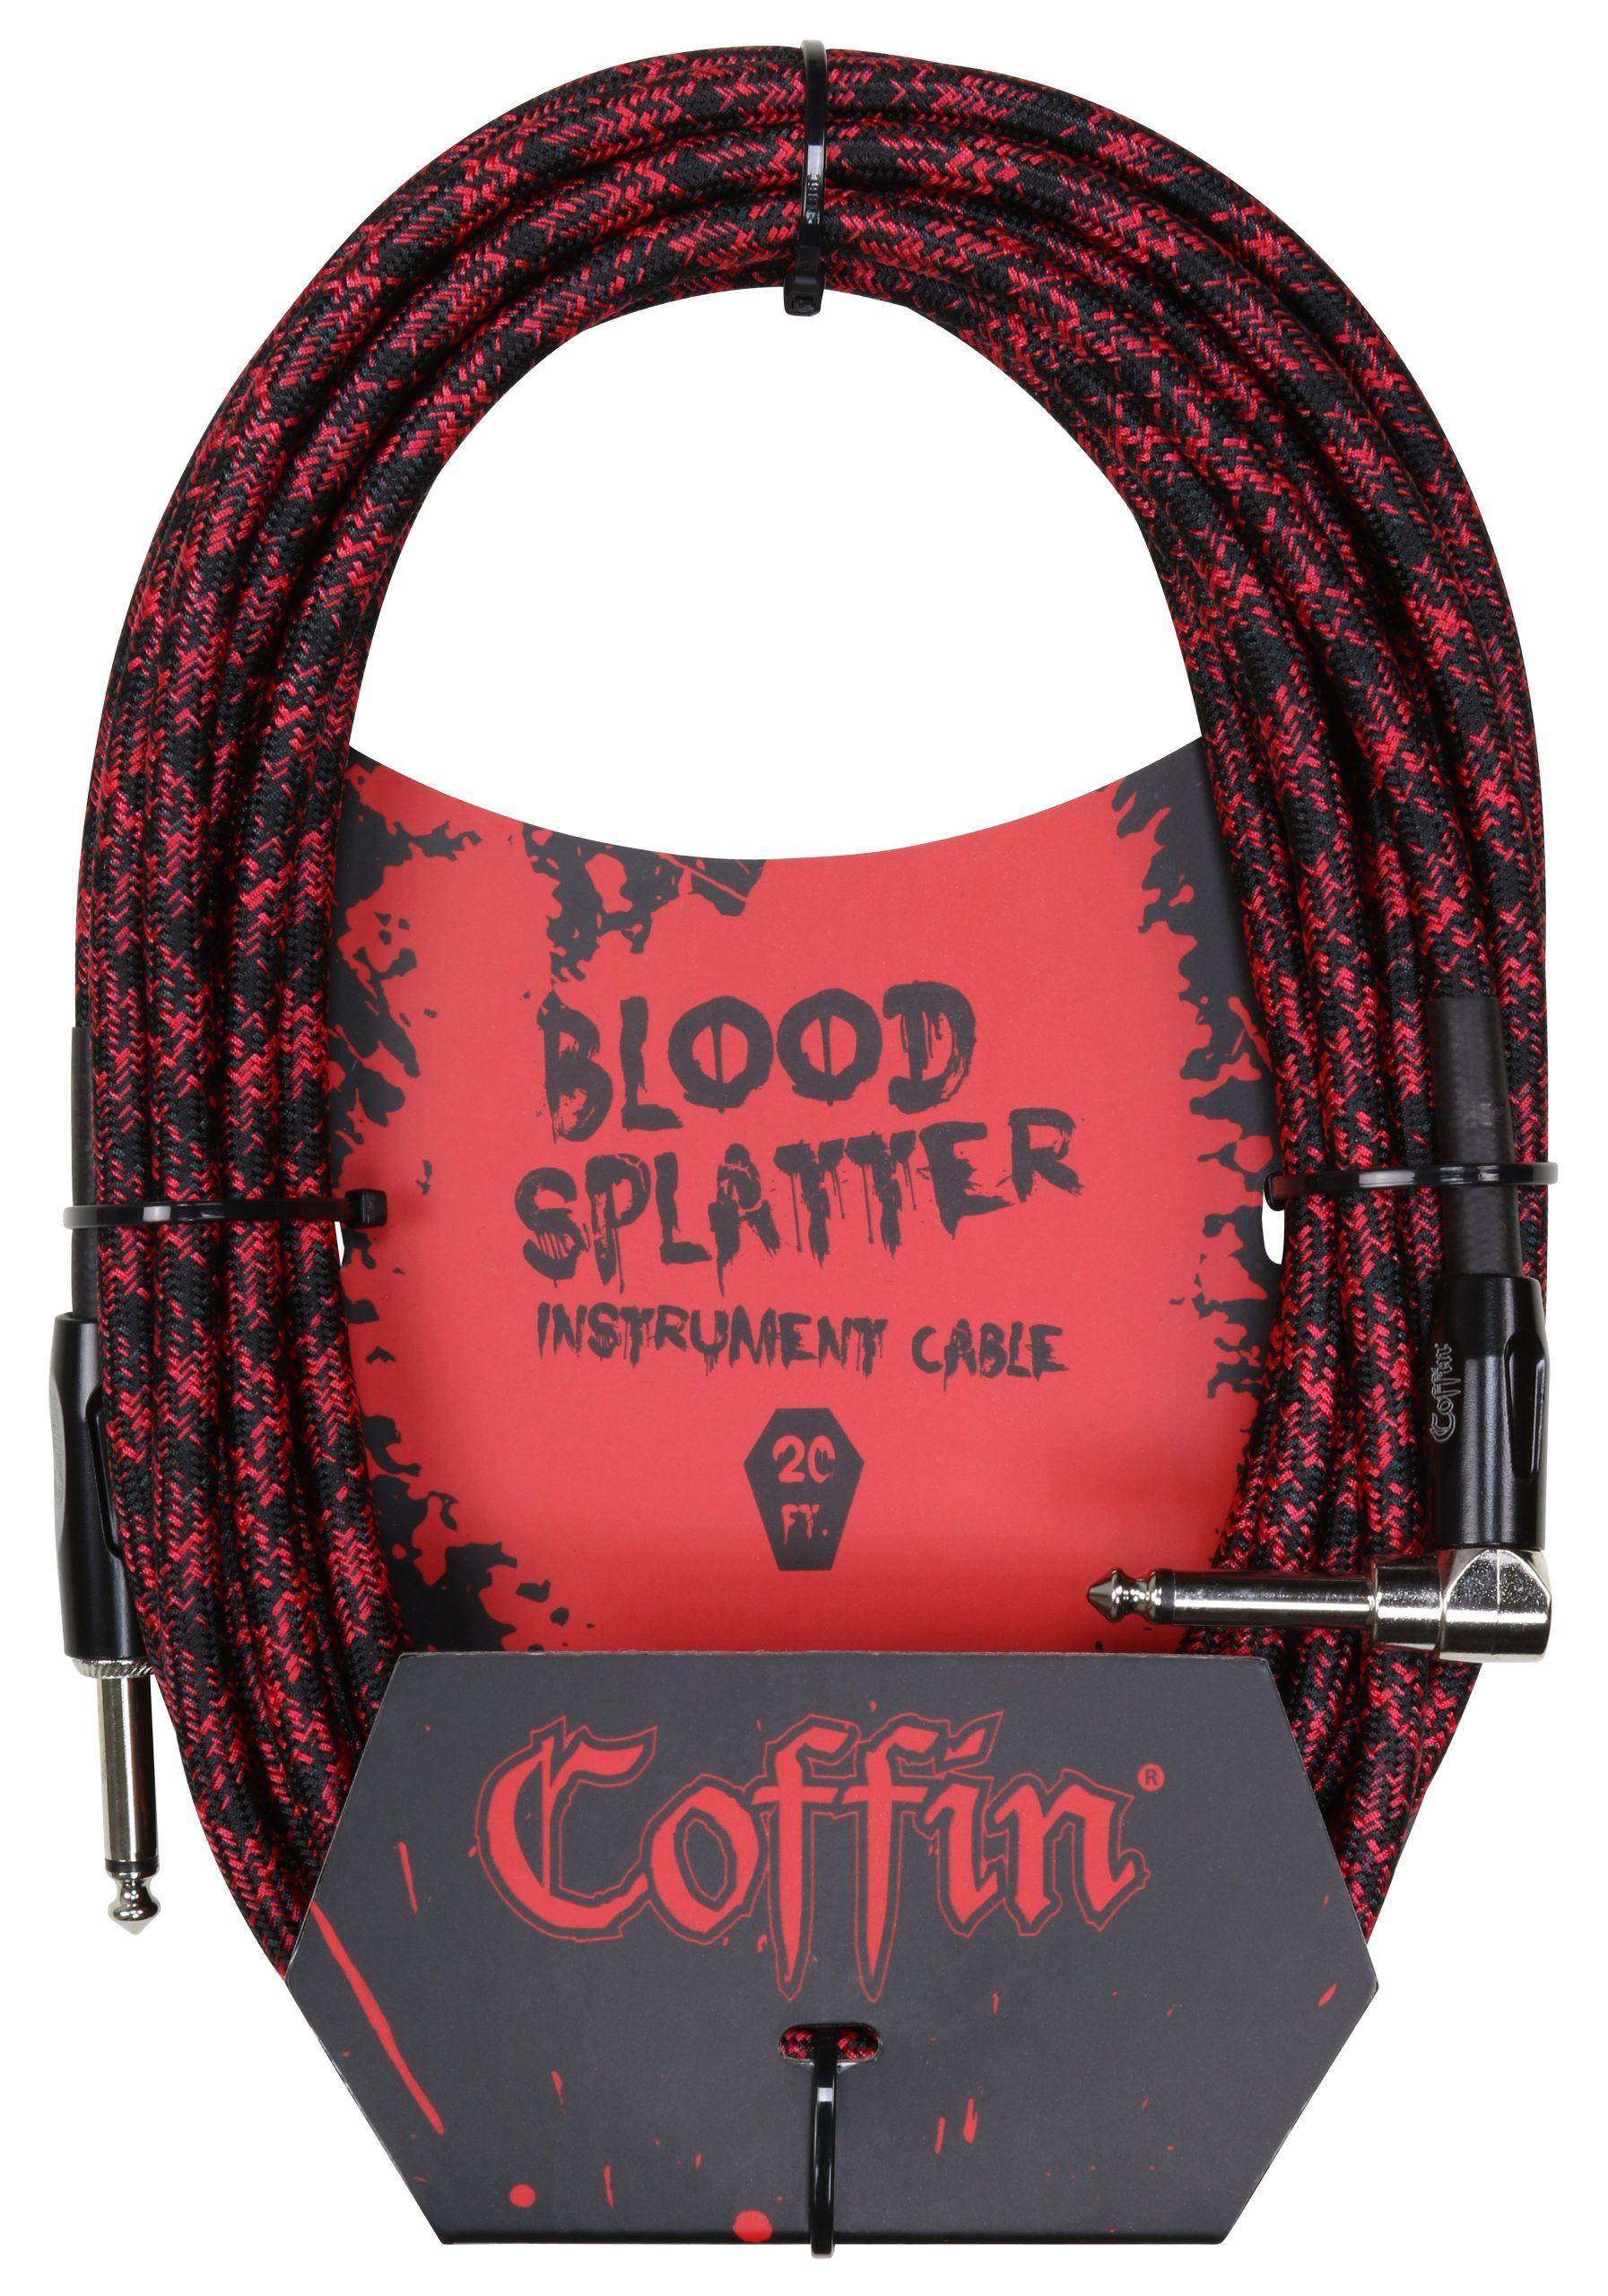 Bloodsplatter Instrument Cable 20ft. Right Angle